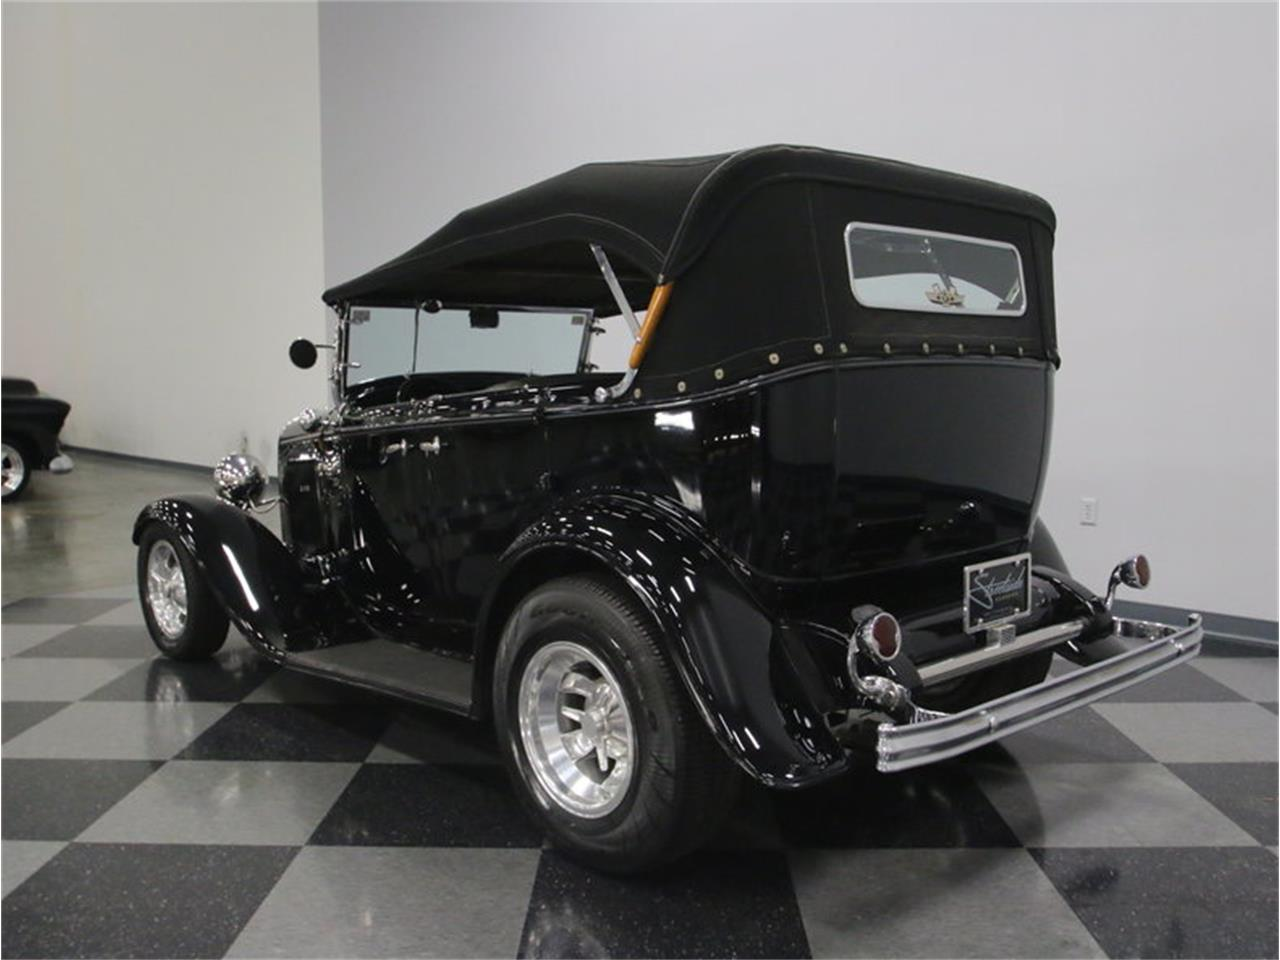 Large Picture of 1932 Ford Phaeton located in Tennessee - $54,995.00 Offered by Streetside Classics - Nashville - LTSW